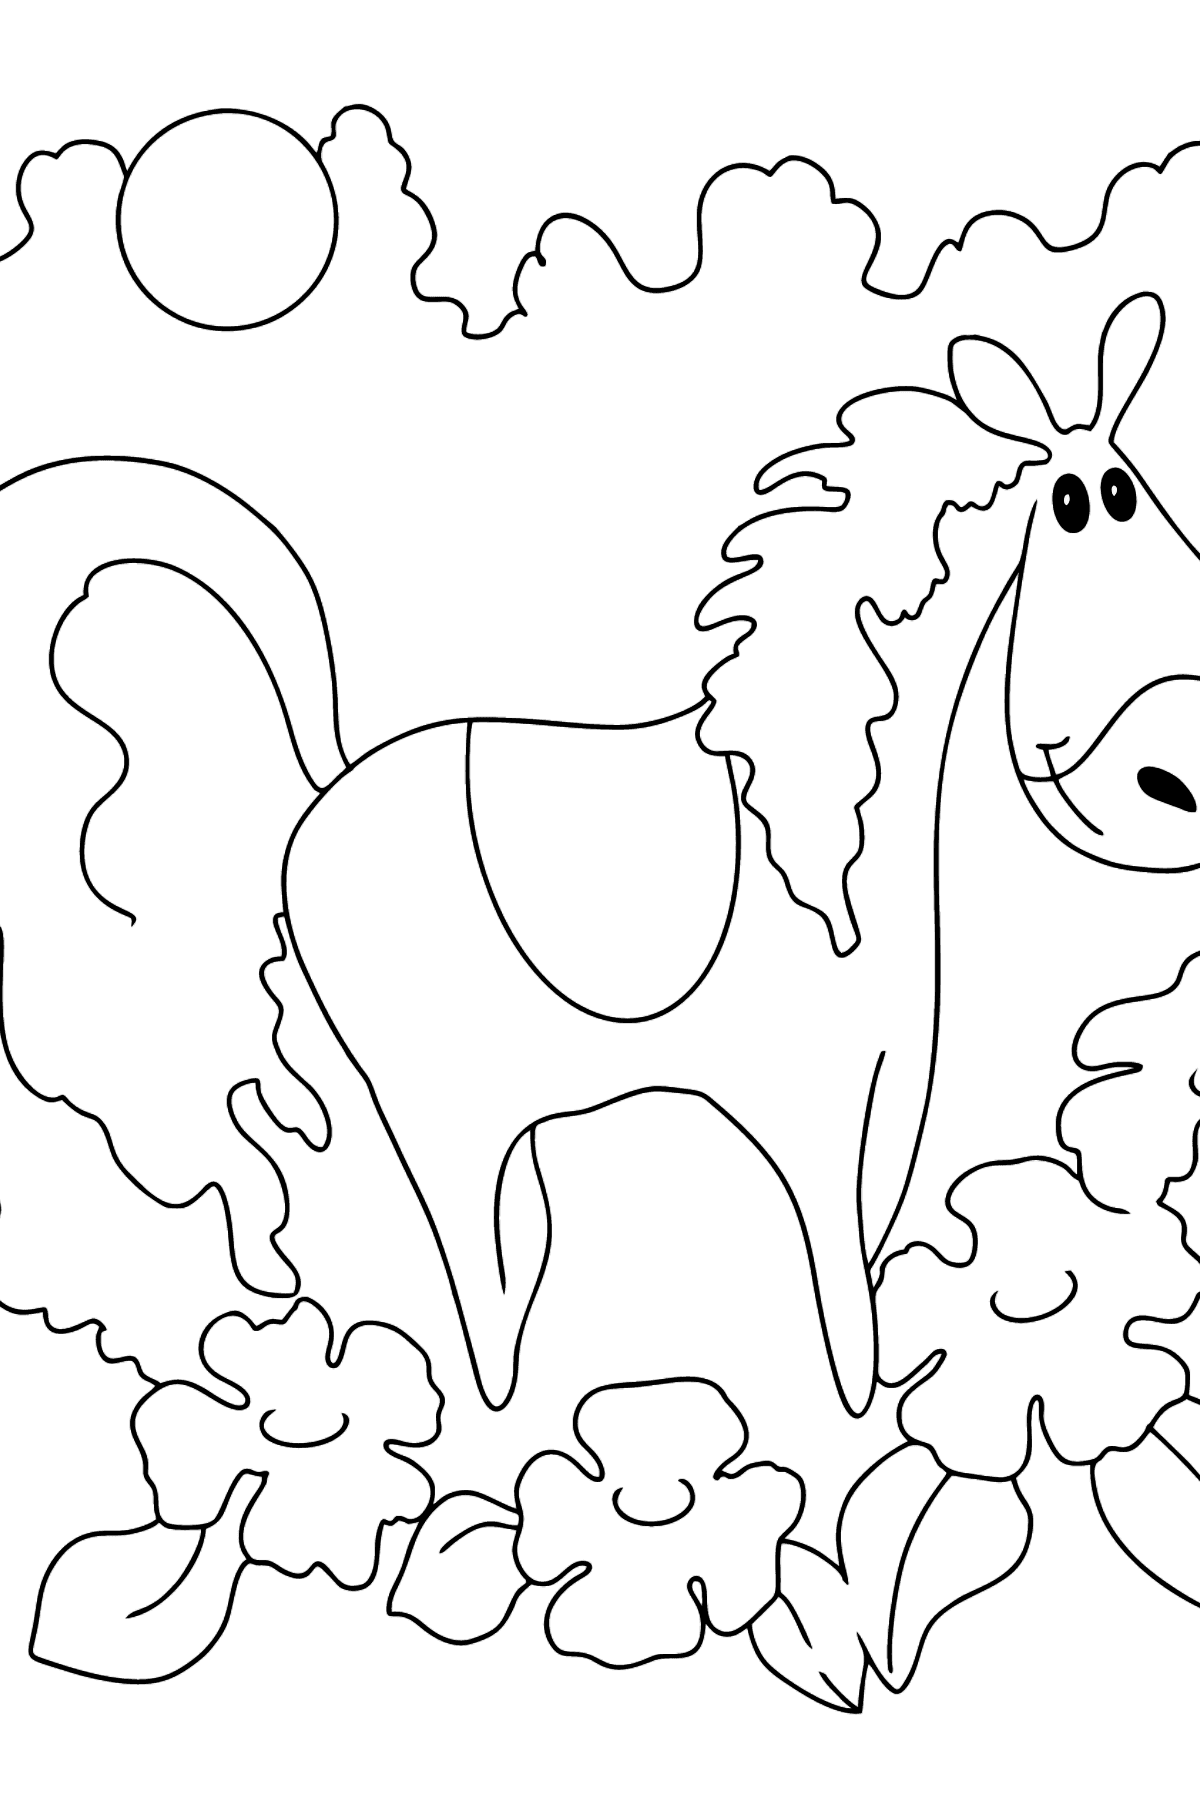 Simple coloring page a horse in flowers - Coloring Pages for Kids